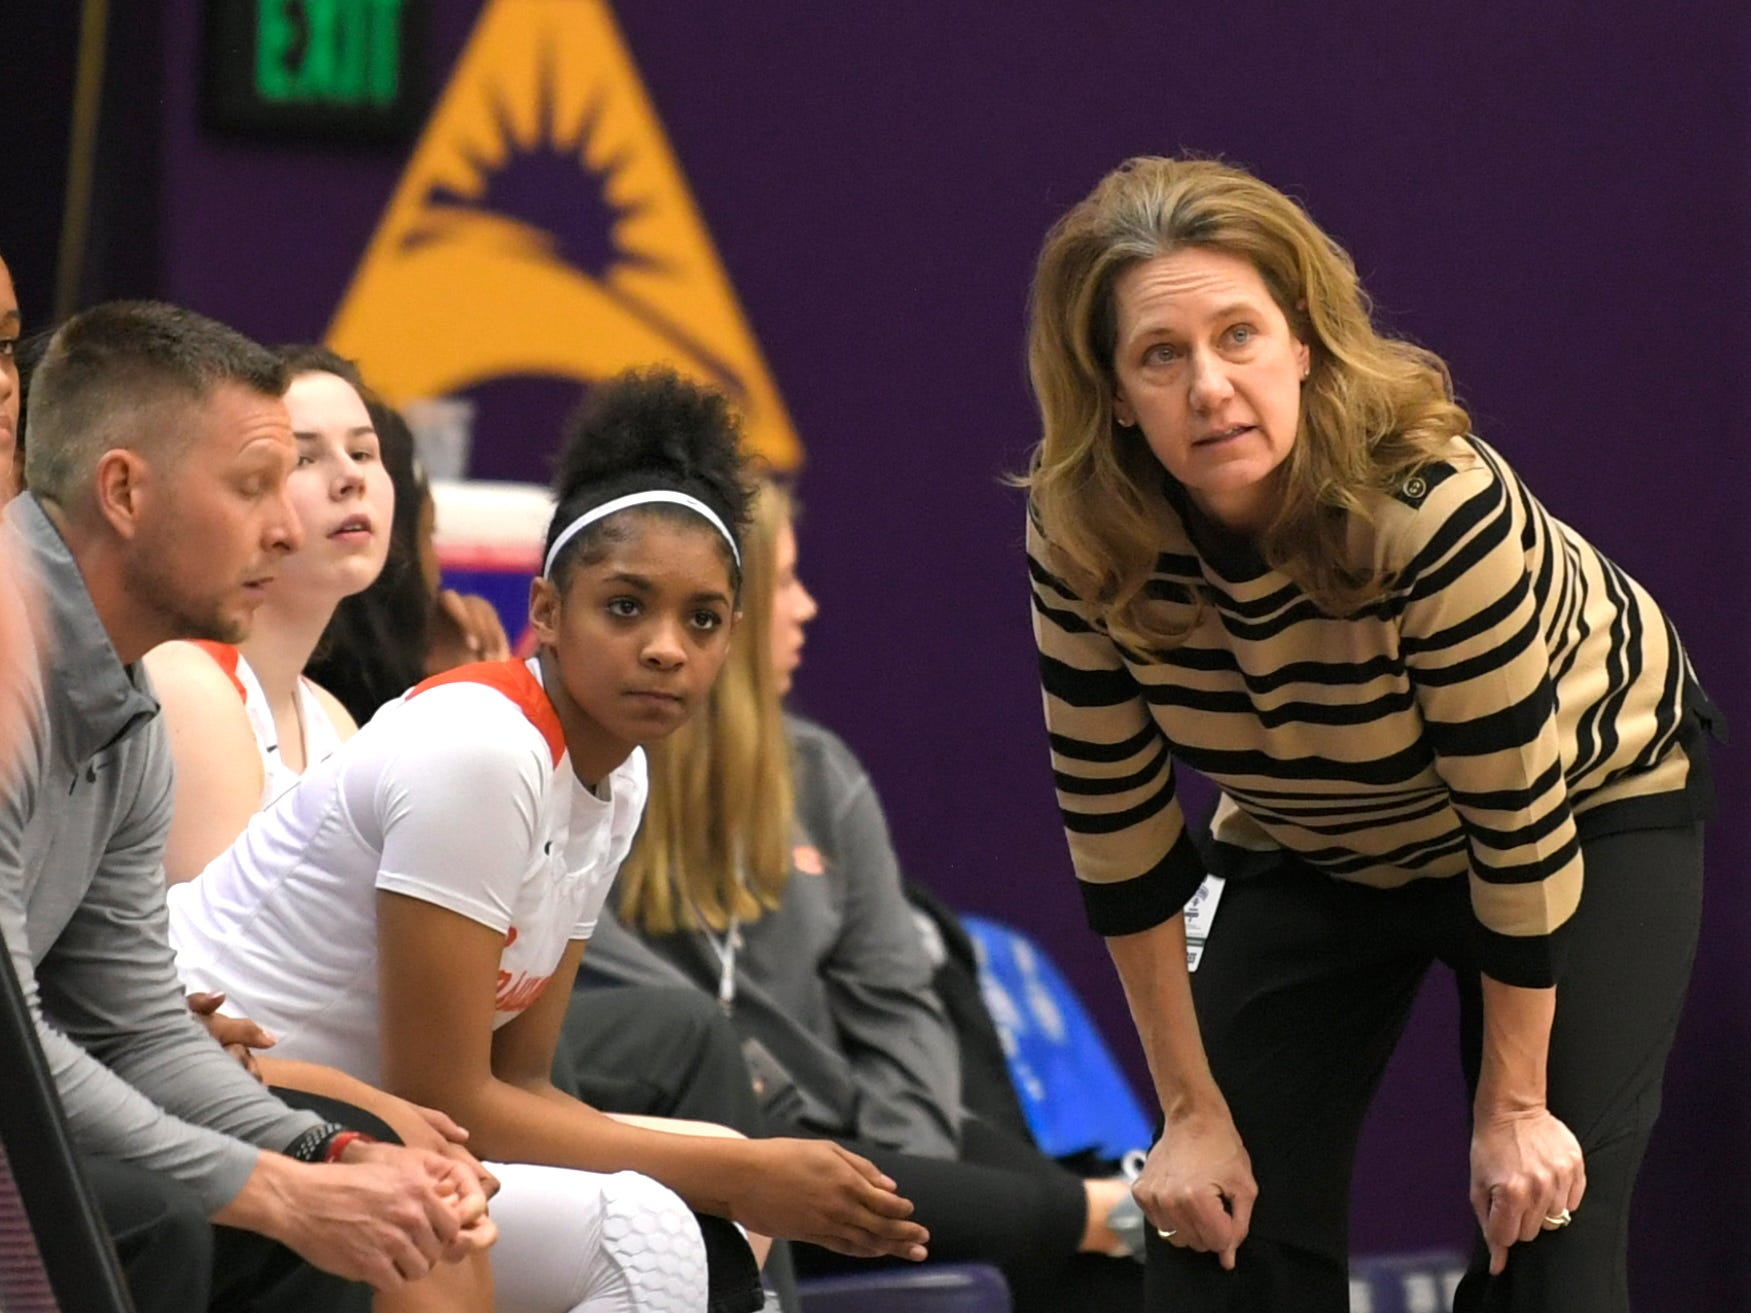 Ensworth head coach Mary Taylor Cowles watches her team during the TSSAA Division II Class AA semifinals at Lipscomb University's Allen Arena in Nashville on Thursday, Feb. 28, 2019.